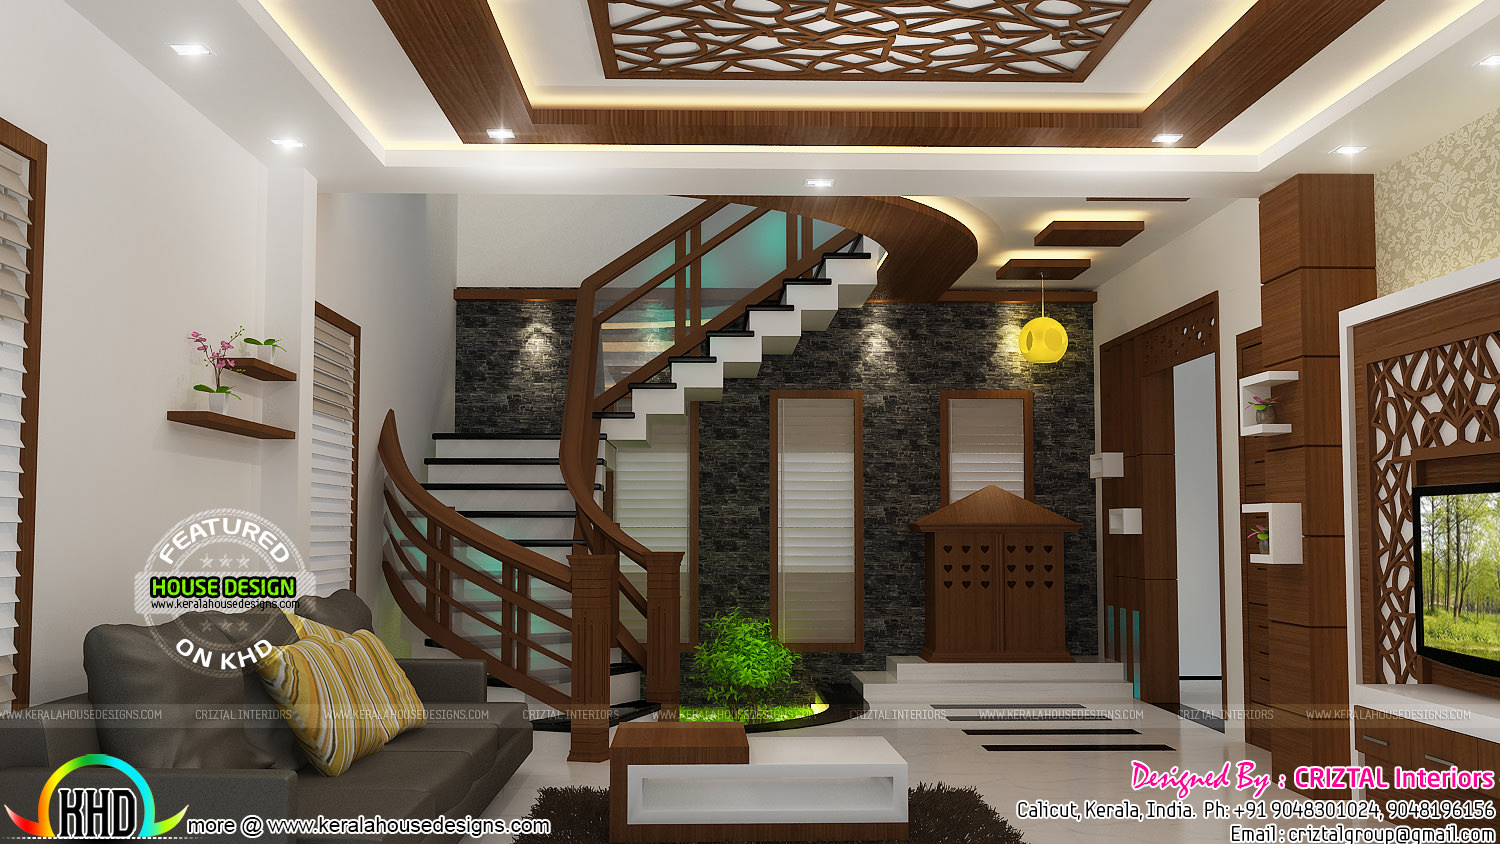 Bedroom dining hall and living interior kerala home for Home dining hall design